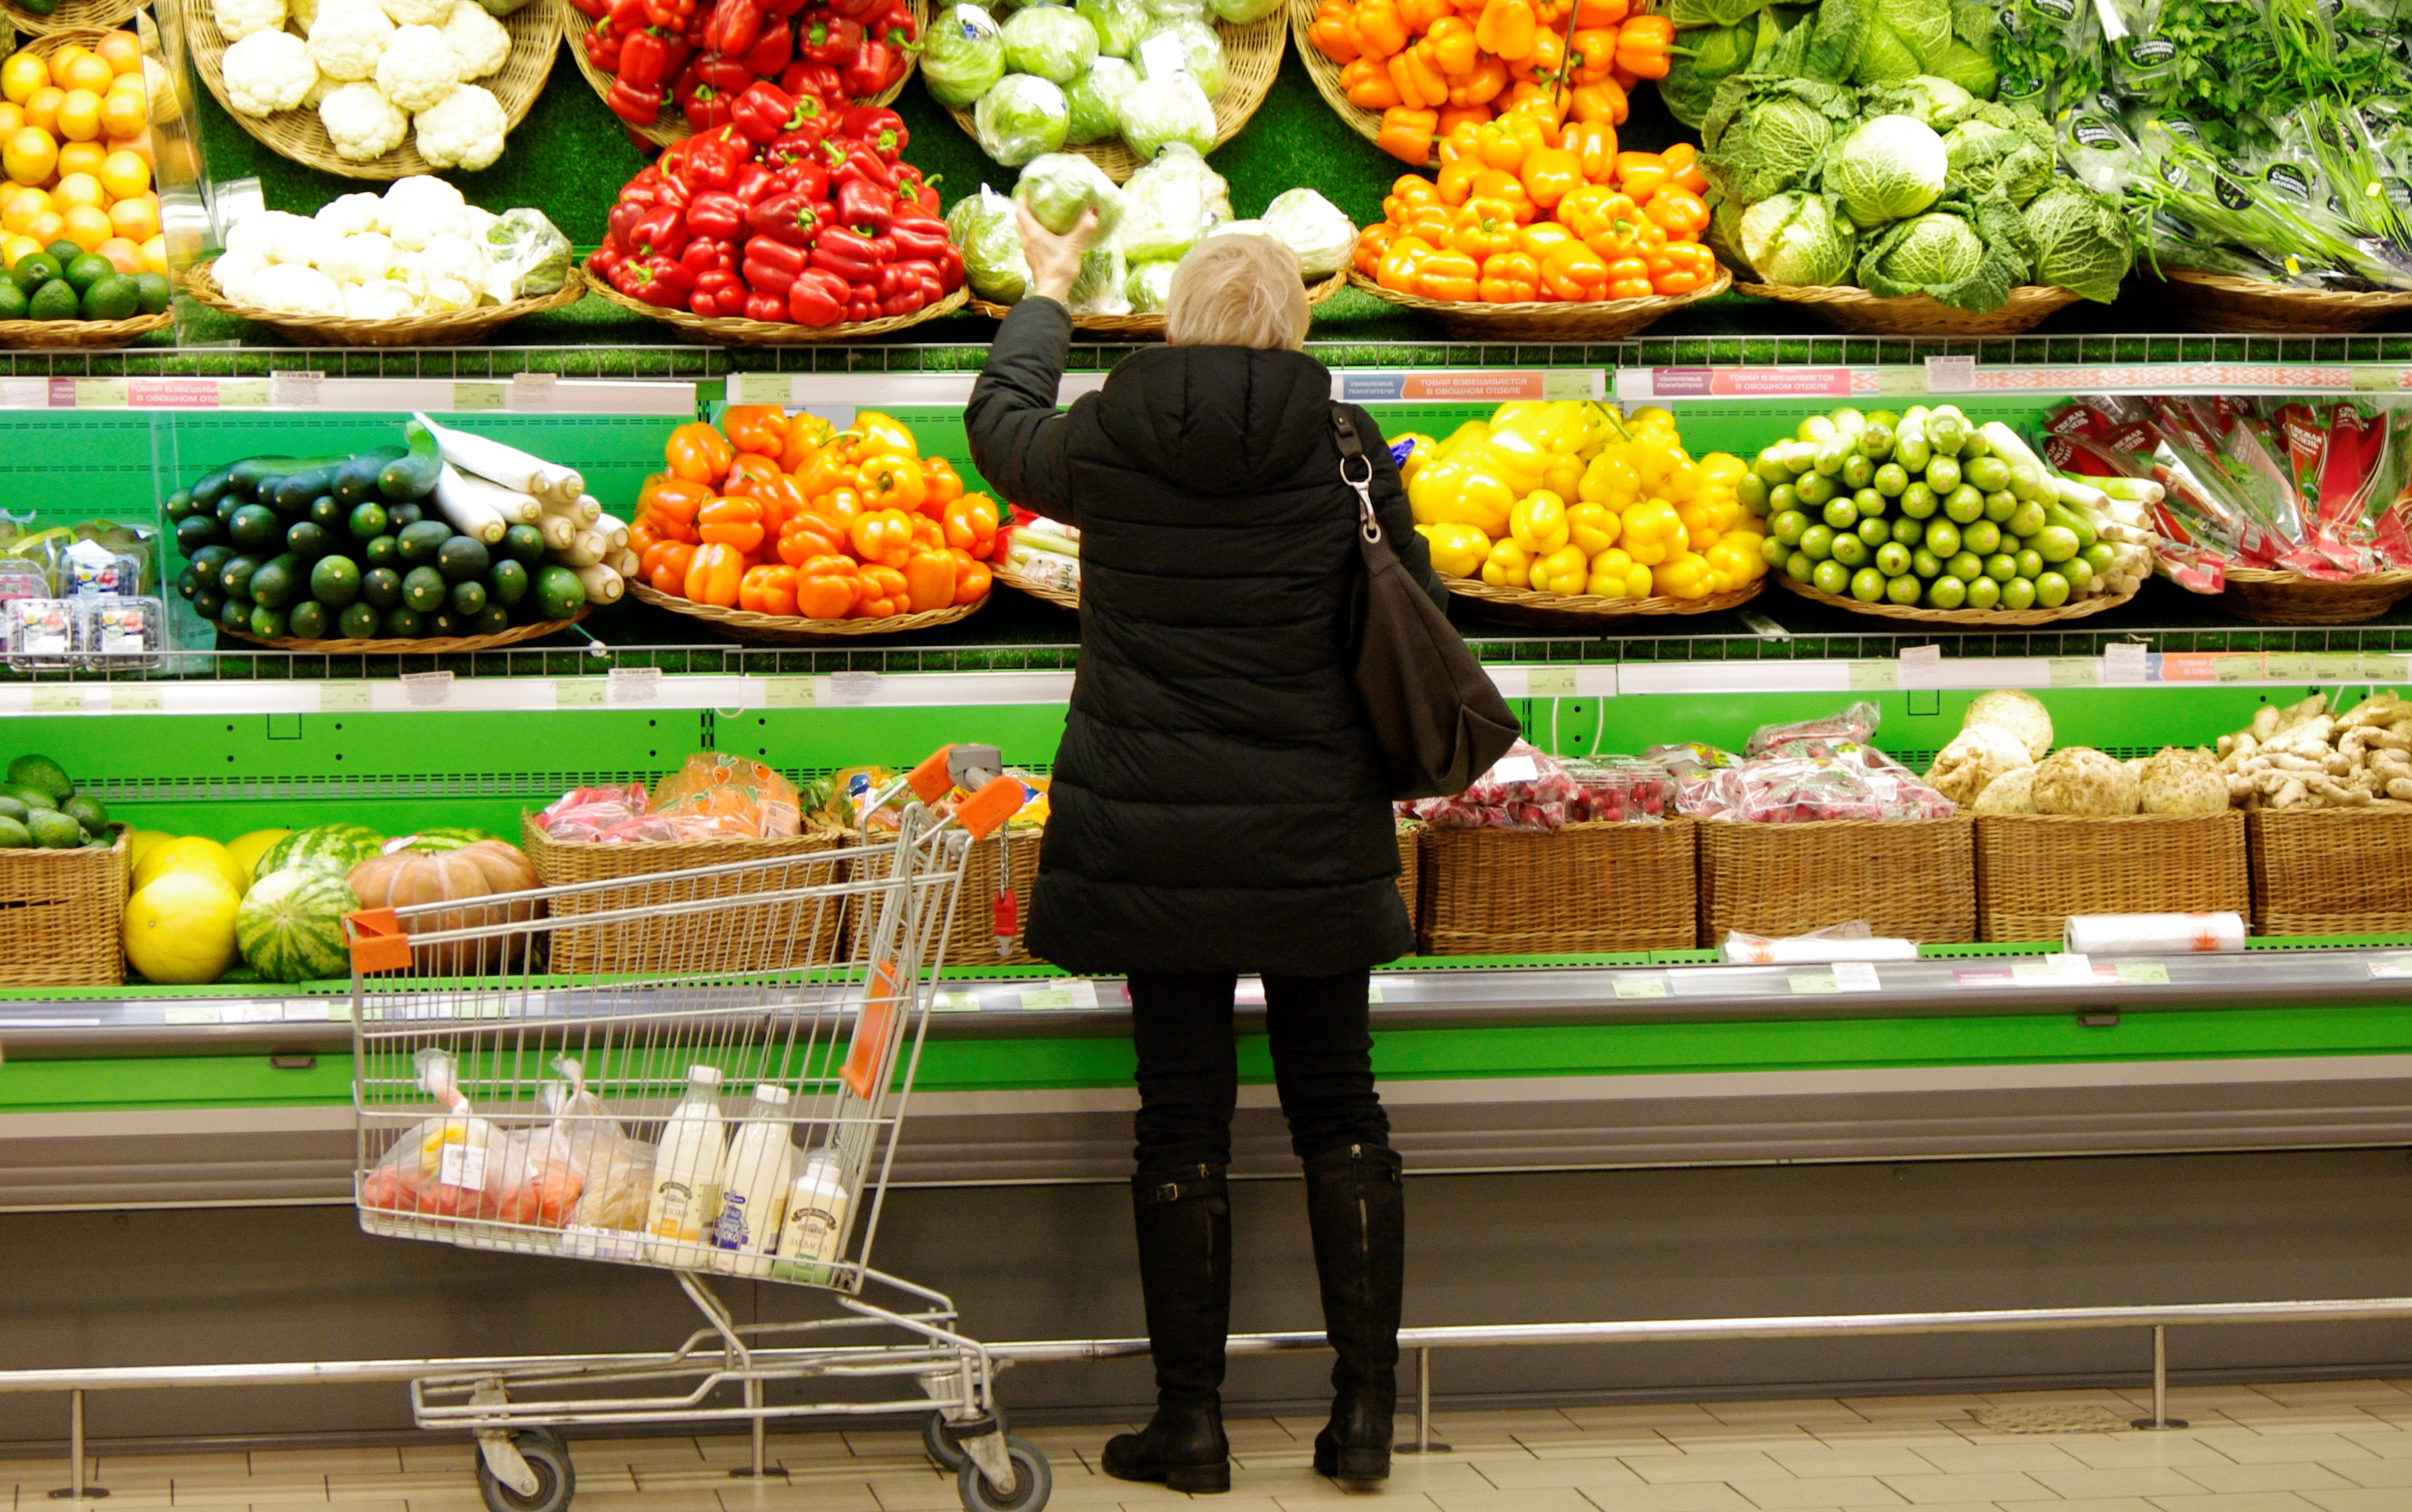 Stock up on these 9 healthy foods to boost your immune system during  coronavirus